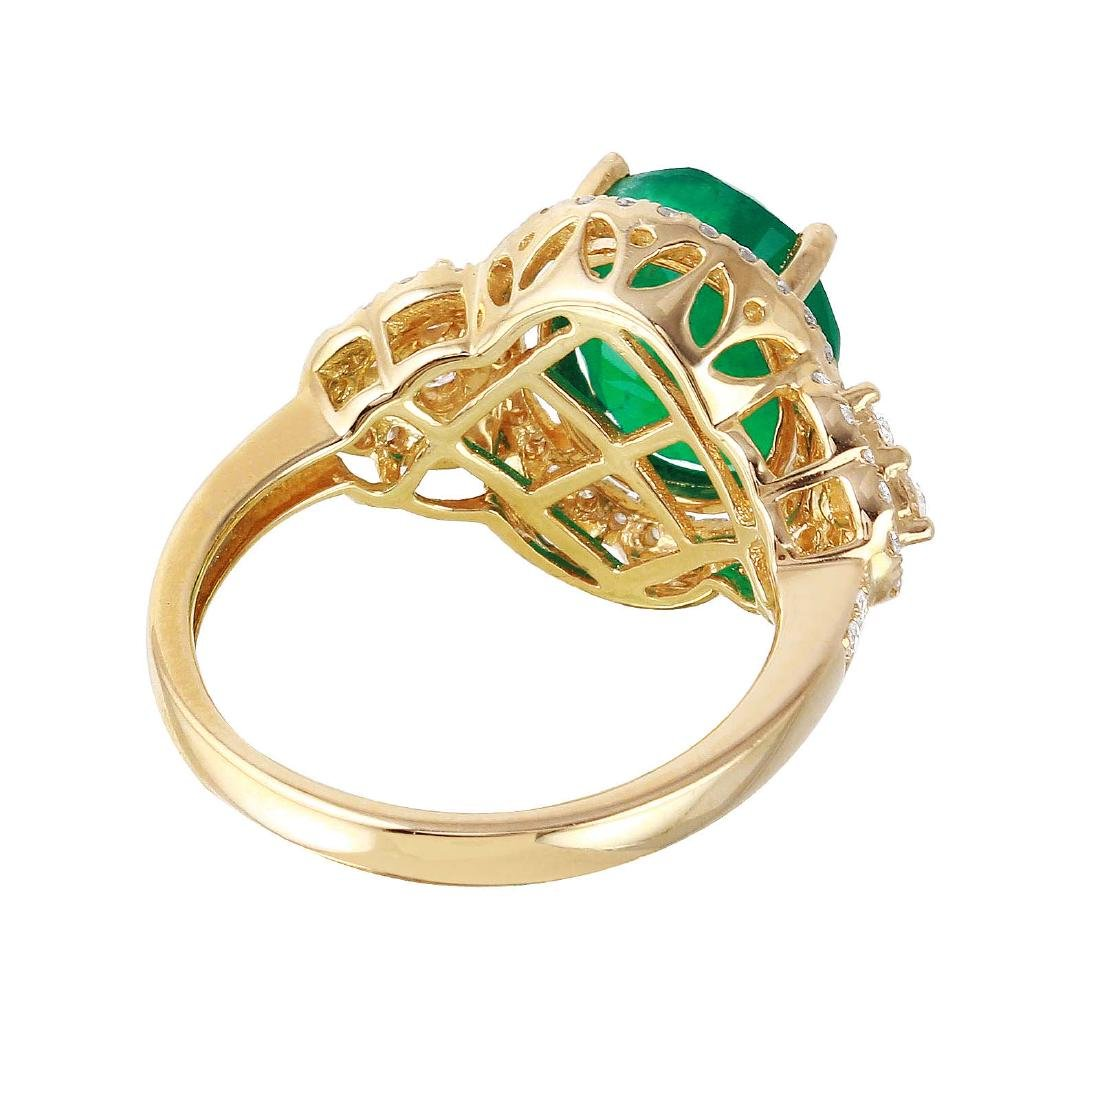 14KT Yellow Gold Emerald and Diamond Ring - 7